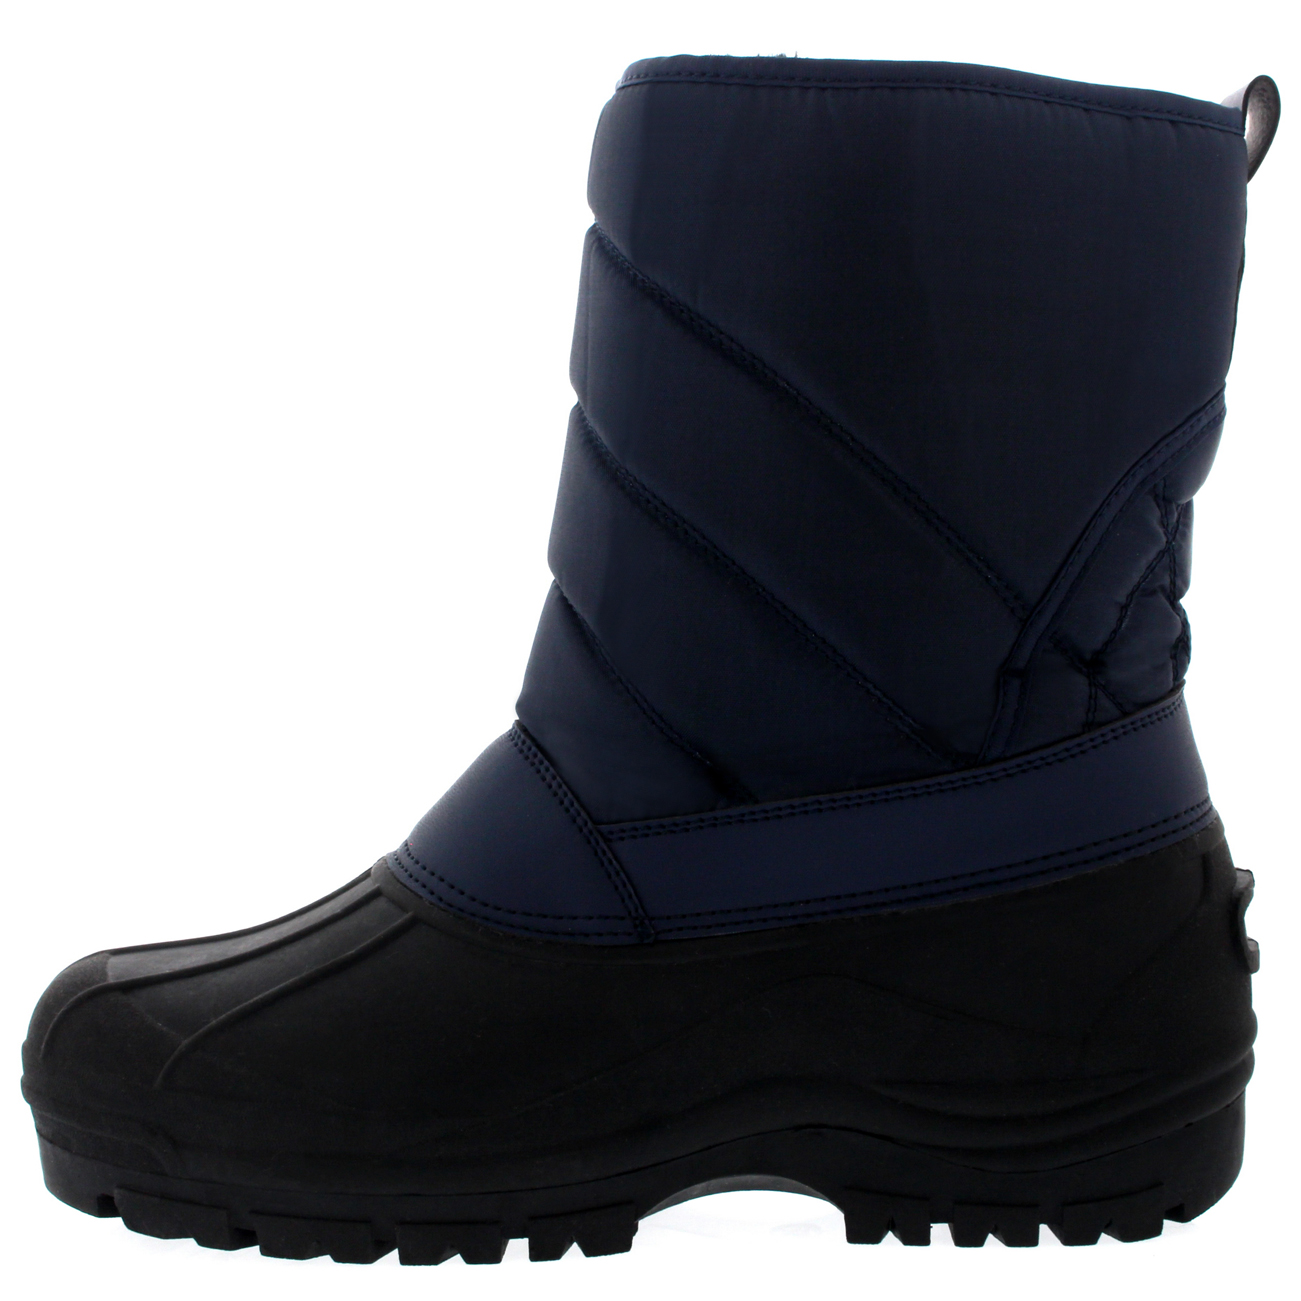 Men's Velcro Strap Winter Boots | Division of Global Affairs